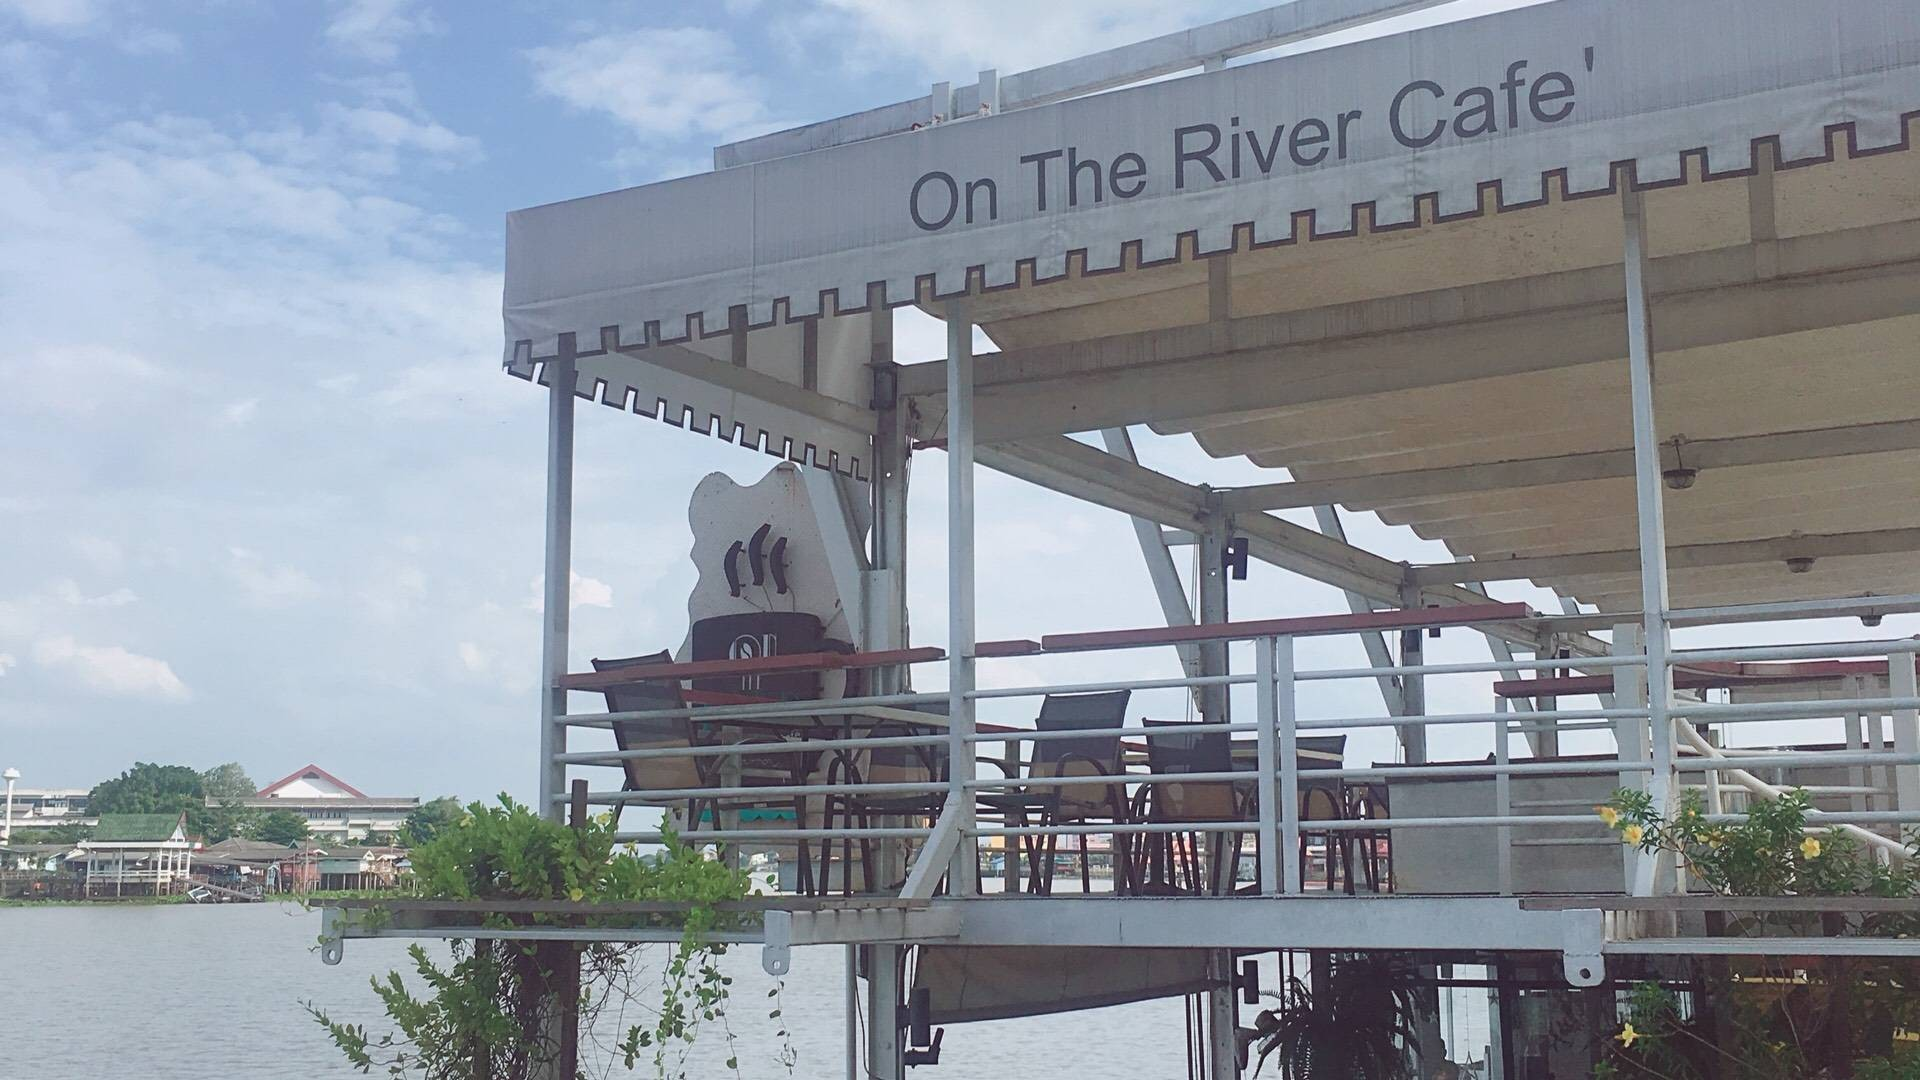 On The River Cafe'